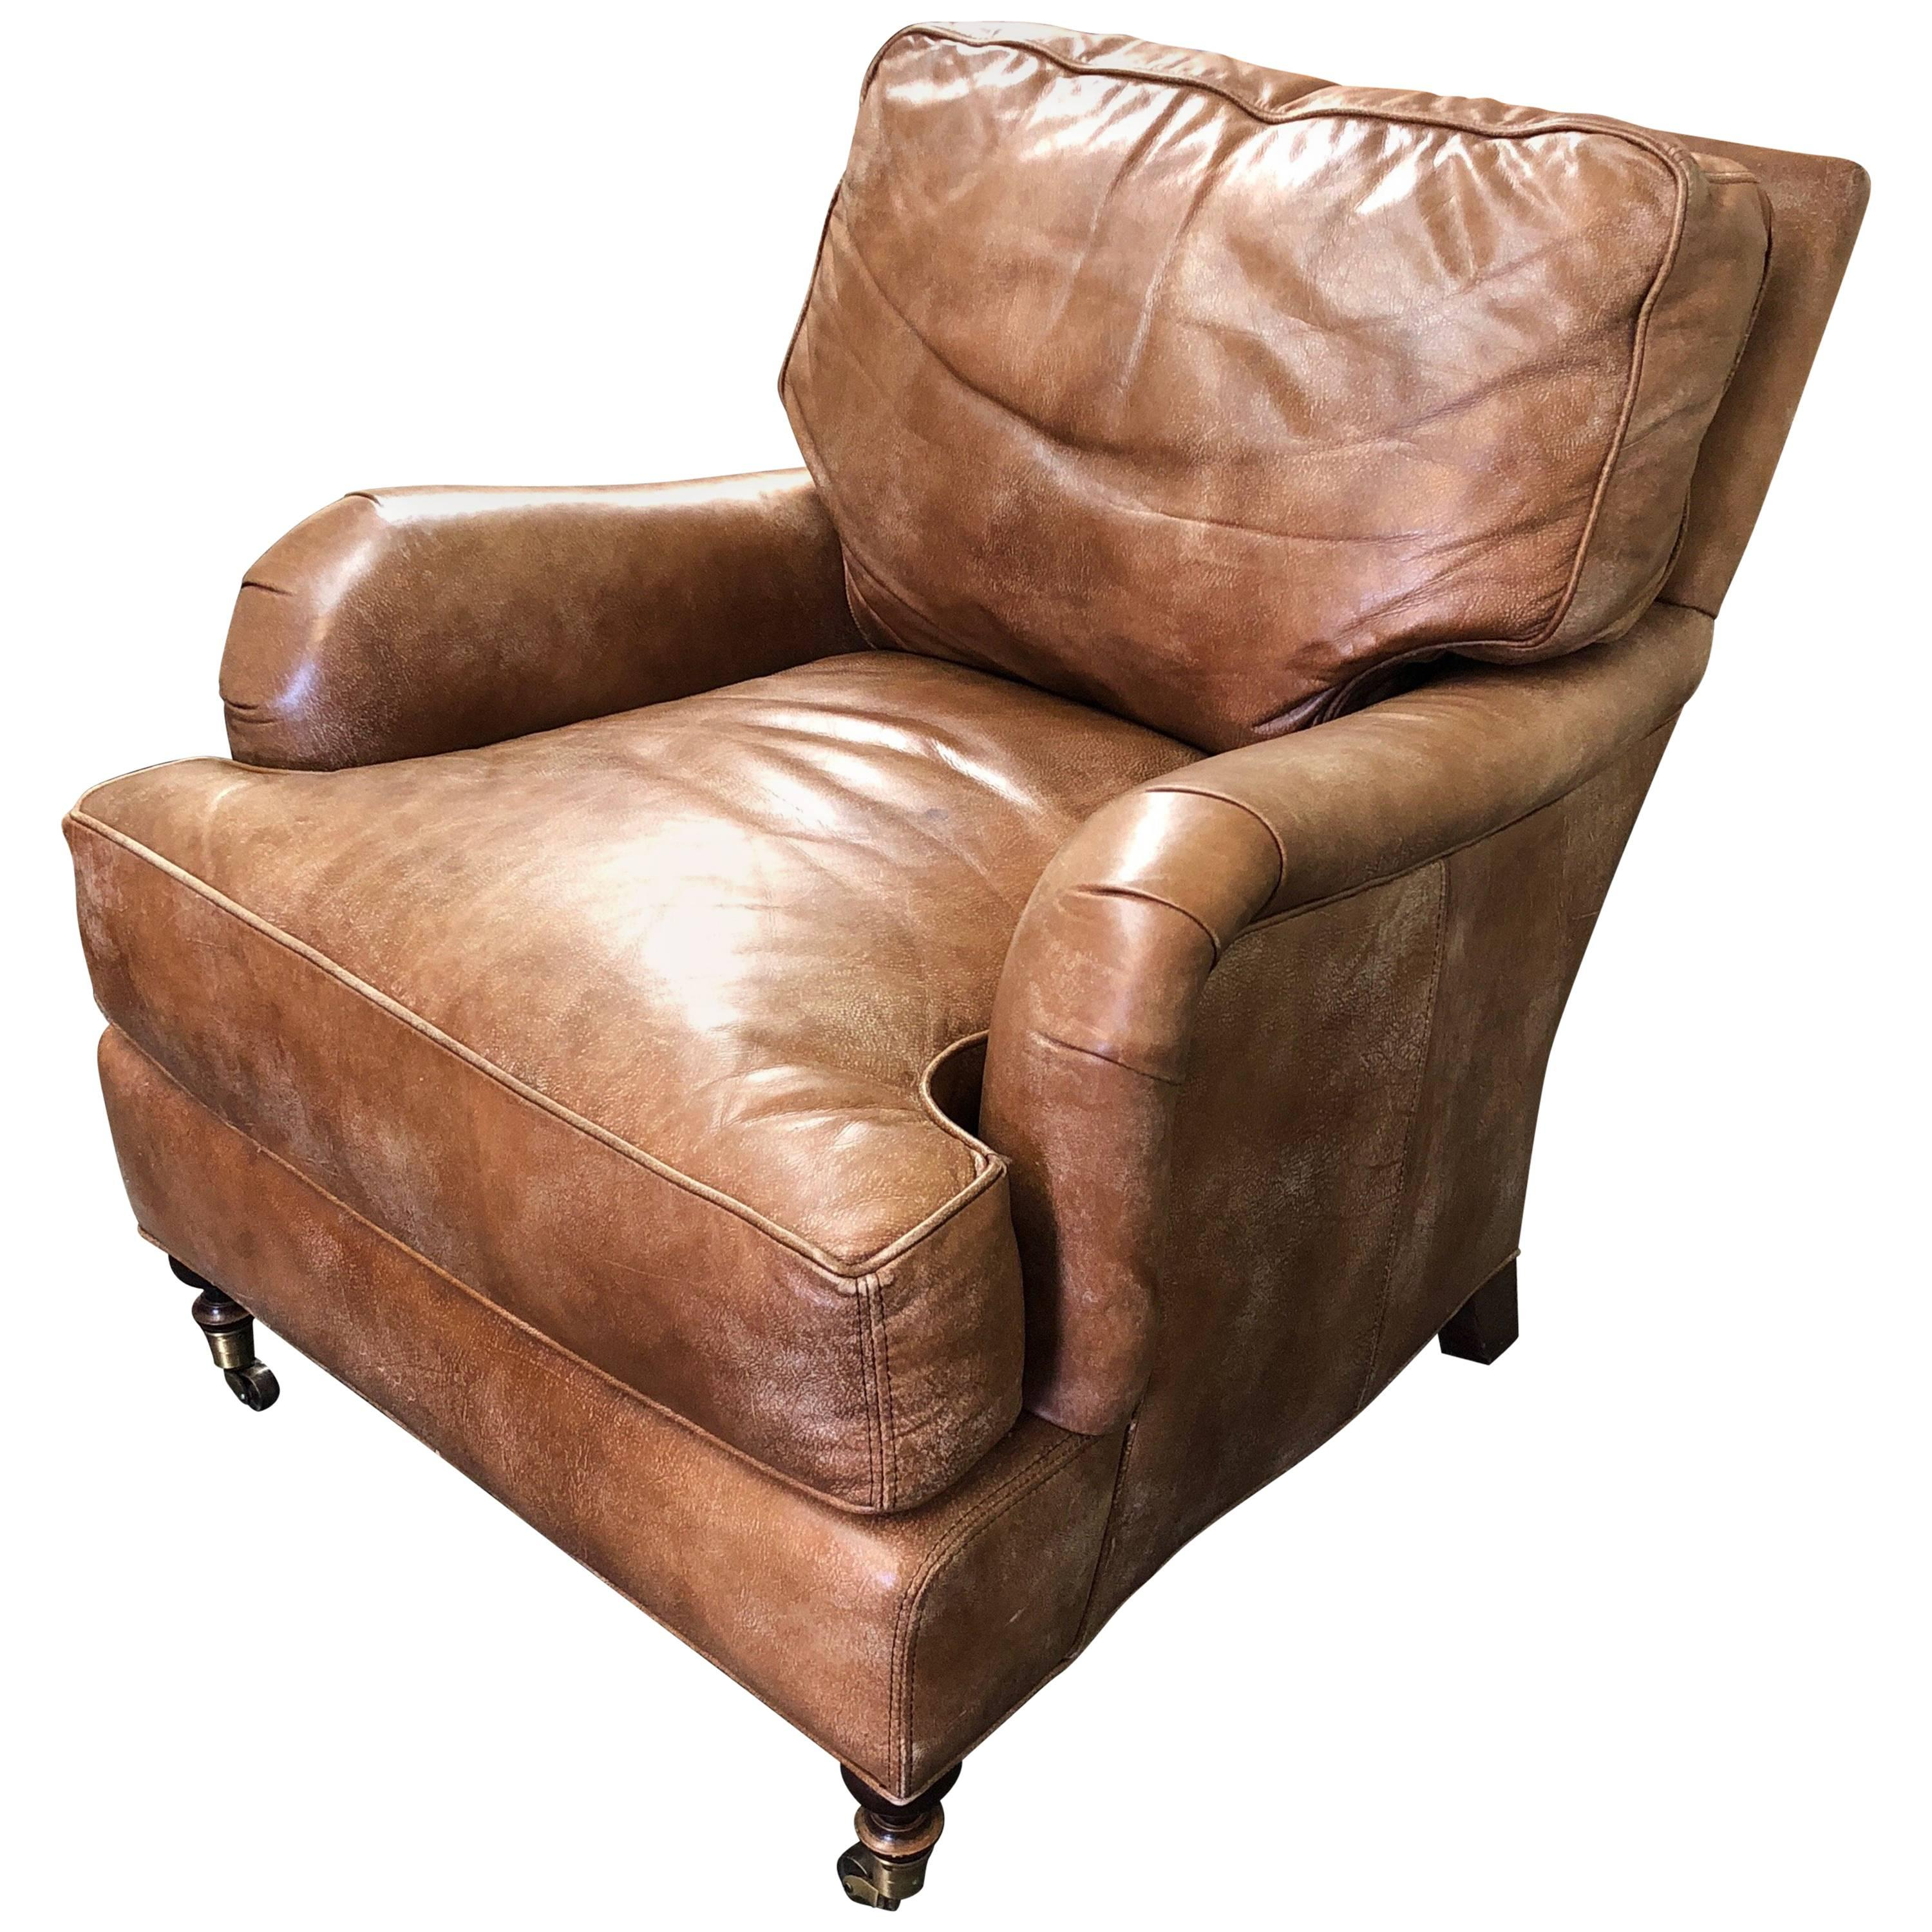 Lee Industries Distressed Leather Armchair